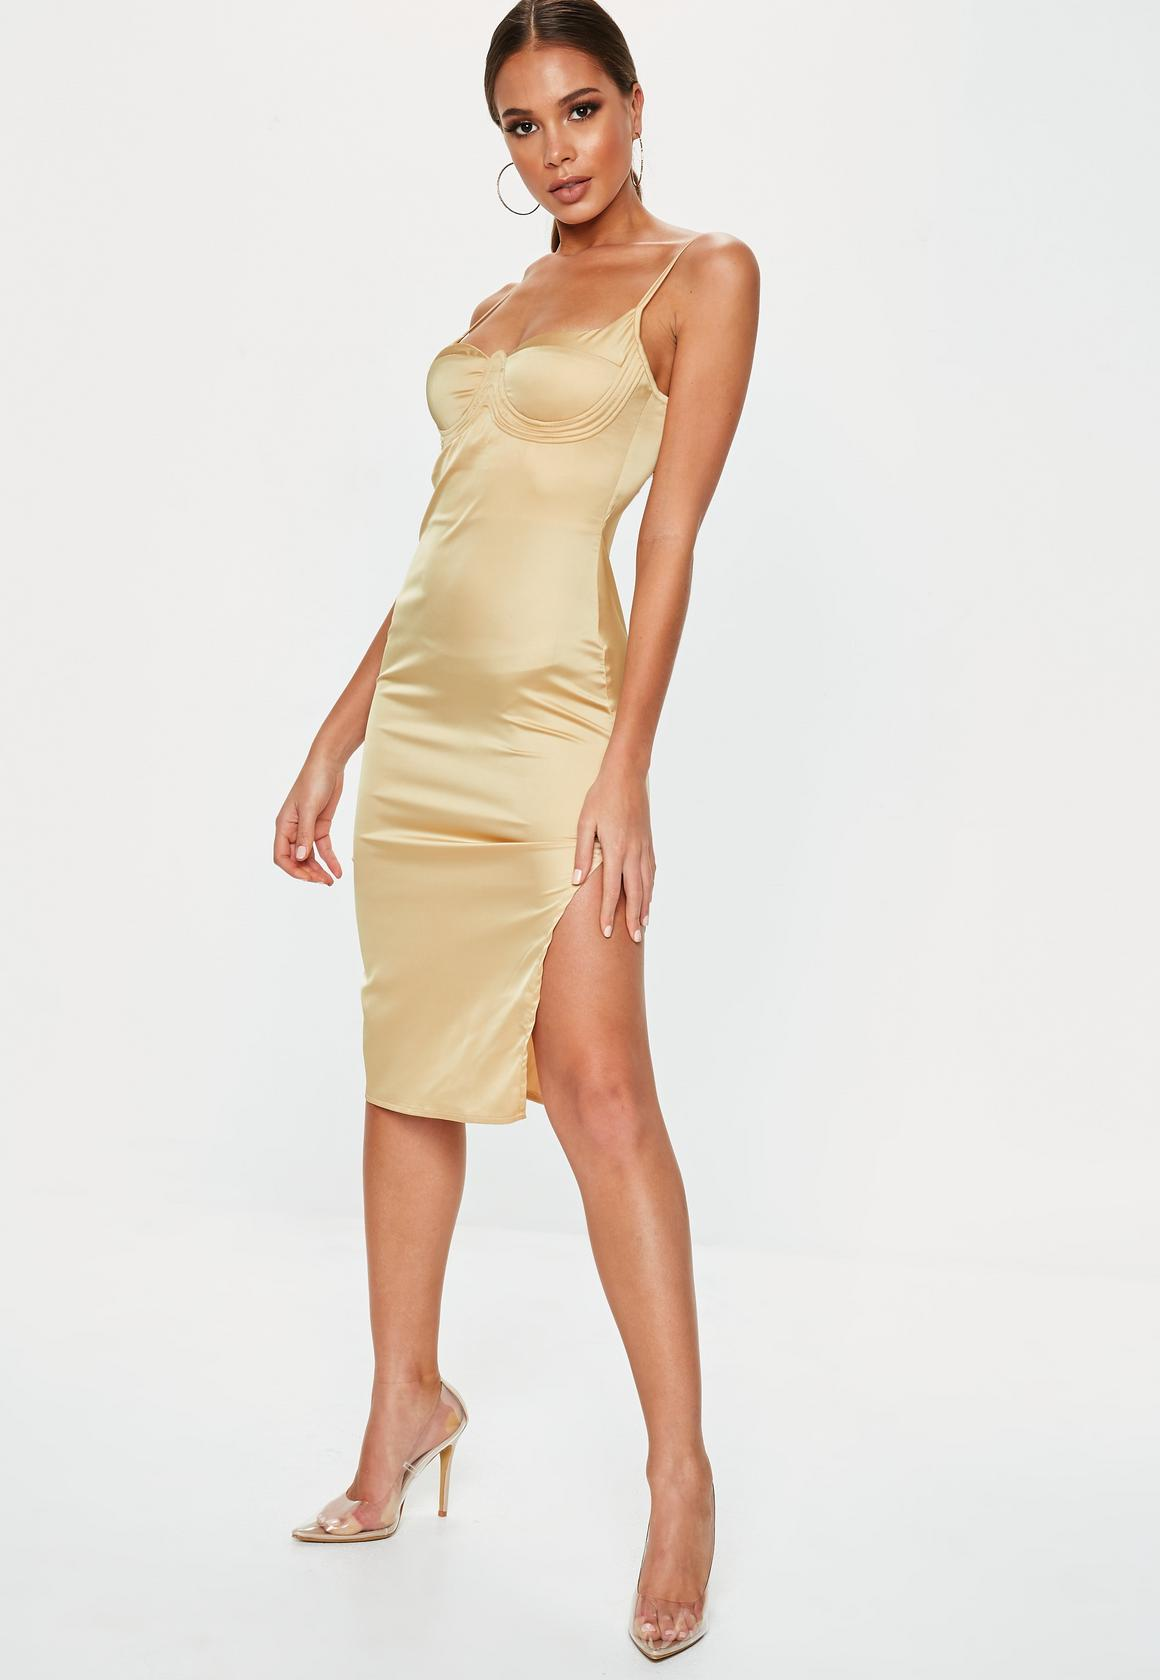 gold-satin-bust-cup-midi-dress-2